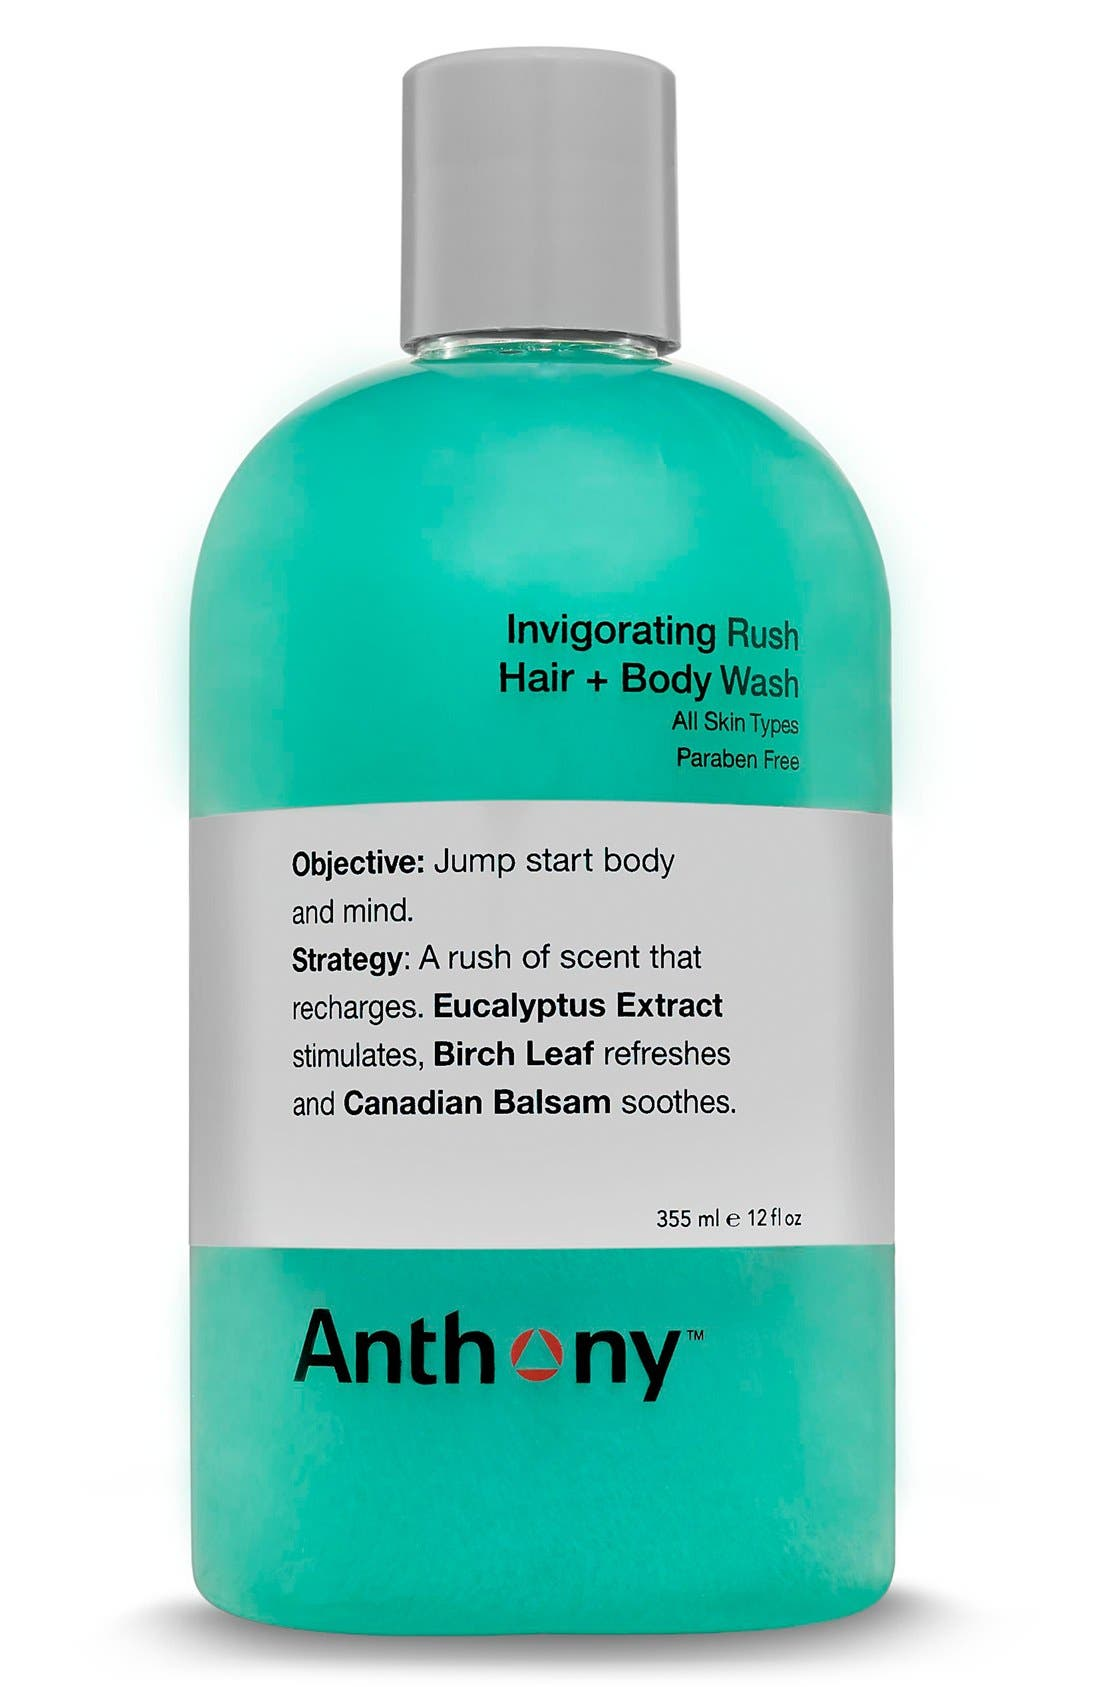 Anthony™ Invigorating Rush Hair & Body Wash